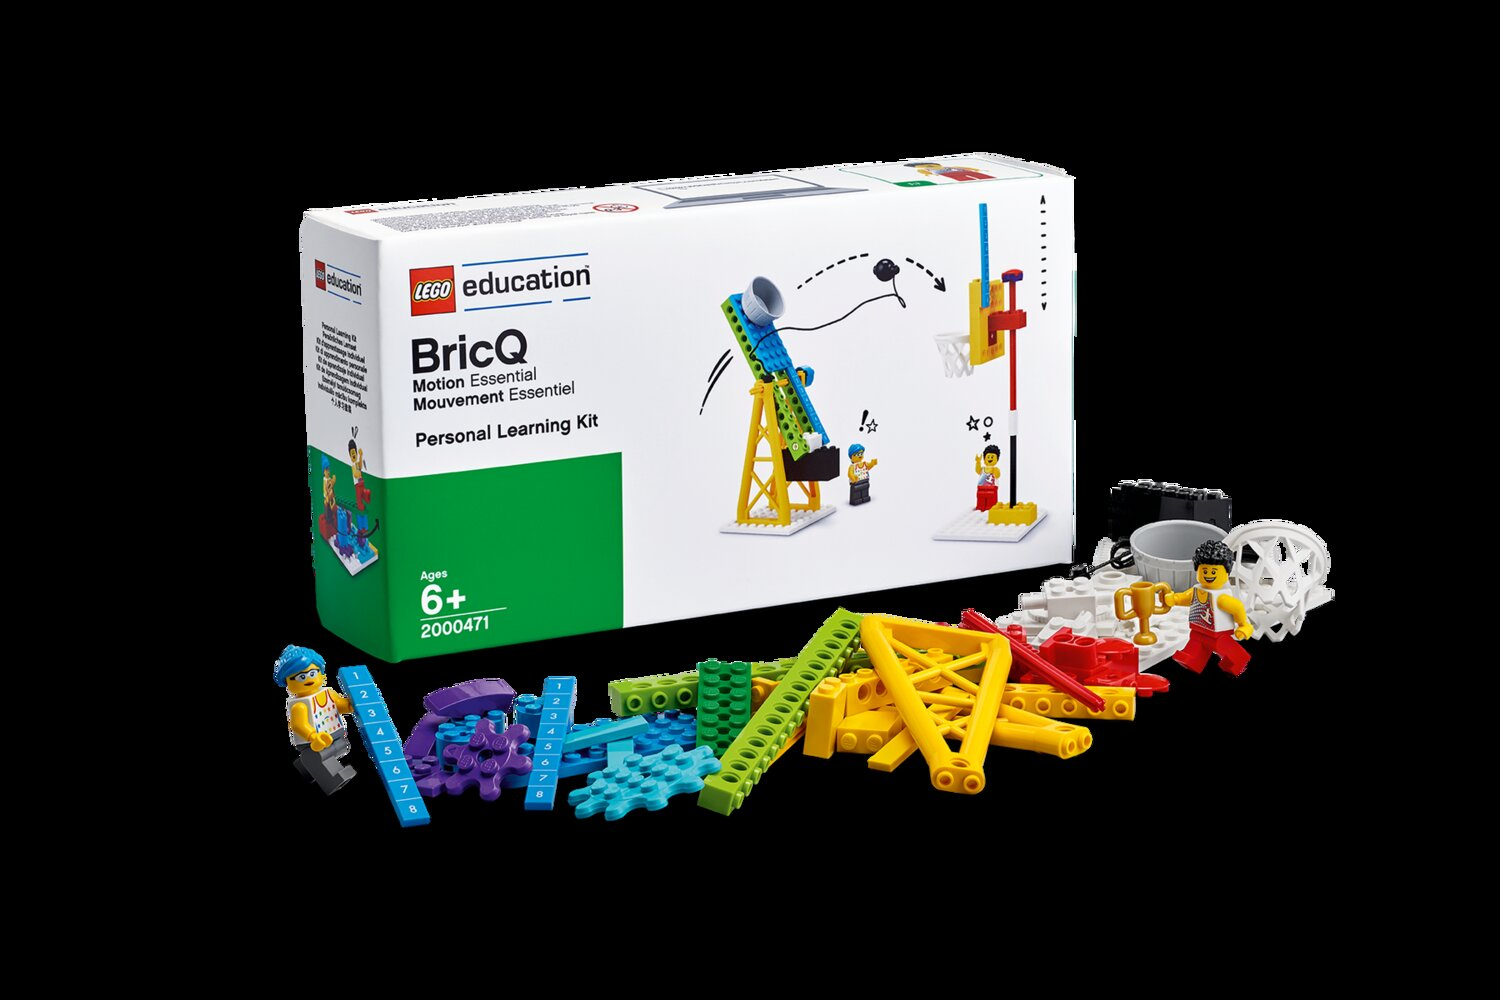 BricQ Motion Essential Personal Learning Kit